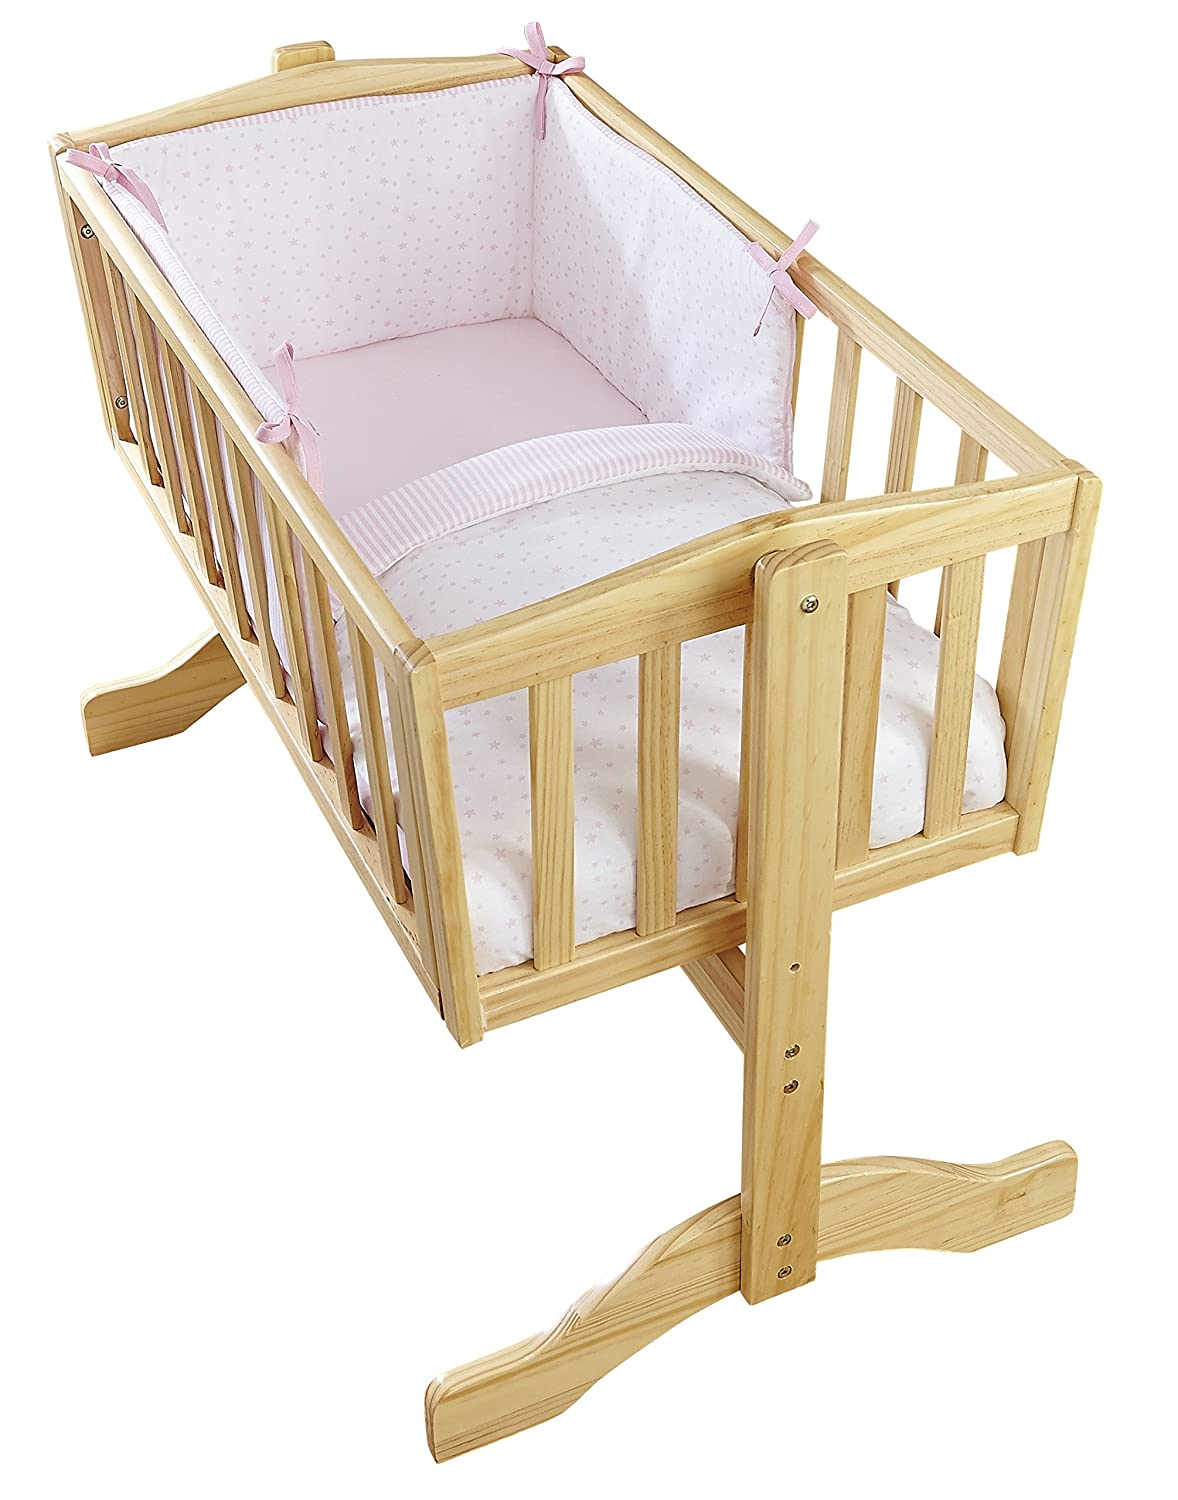 Clair de Lune Crib Set (Blue, Stars and Stripes, 2-Piece) CL5806BE